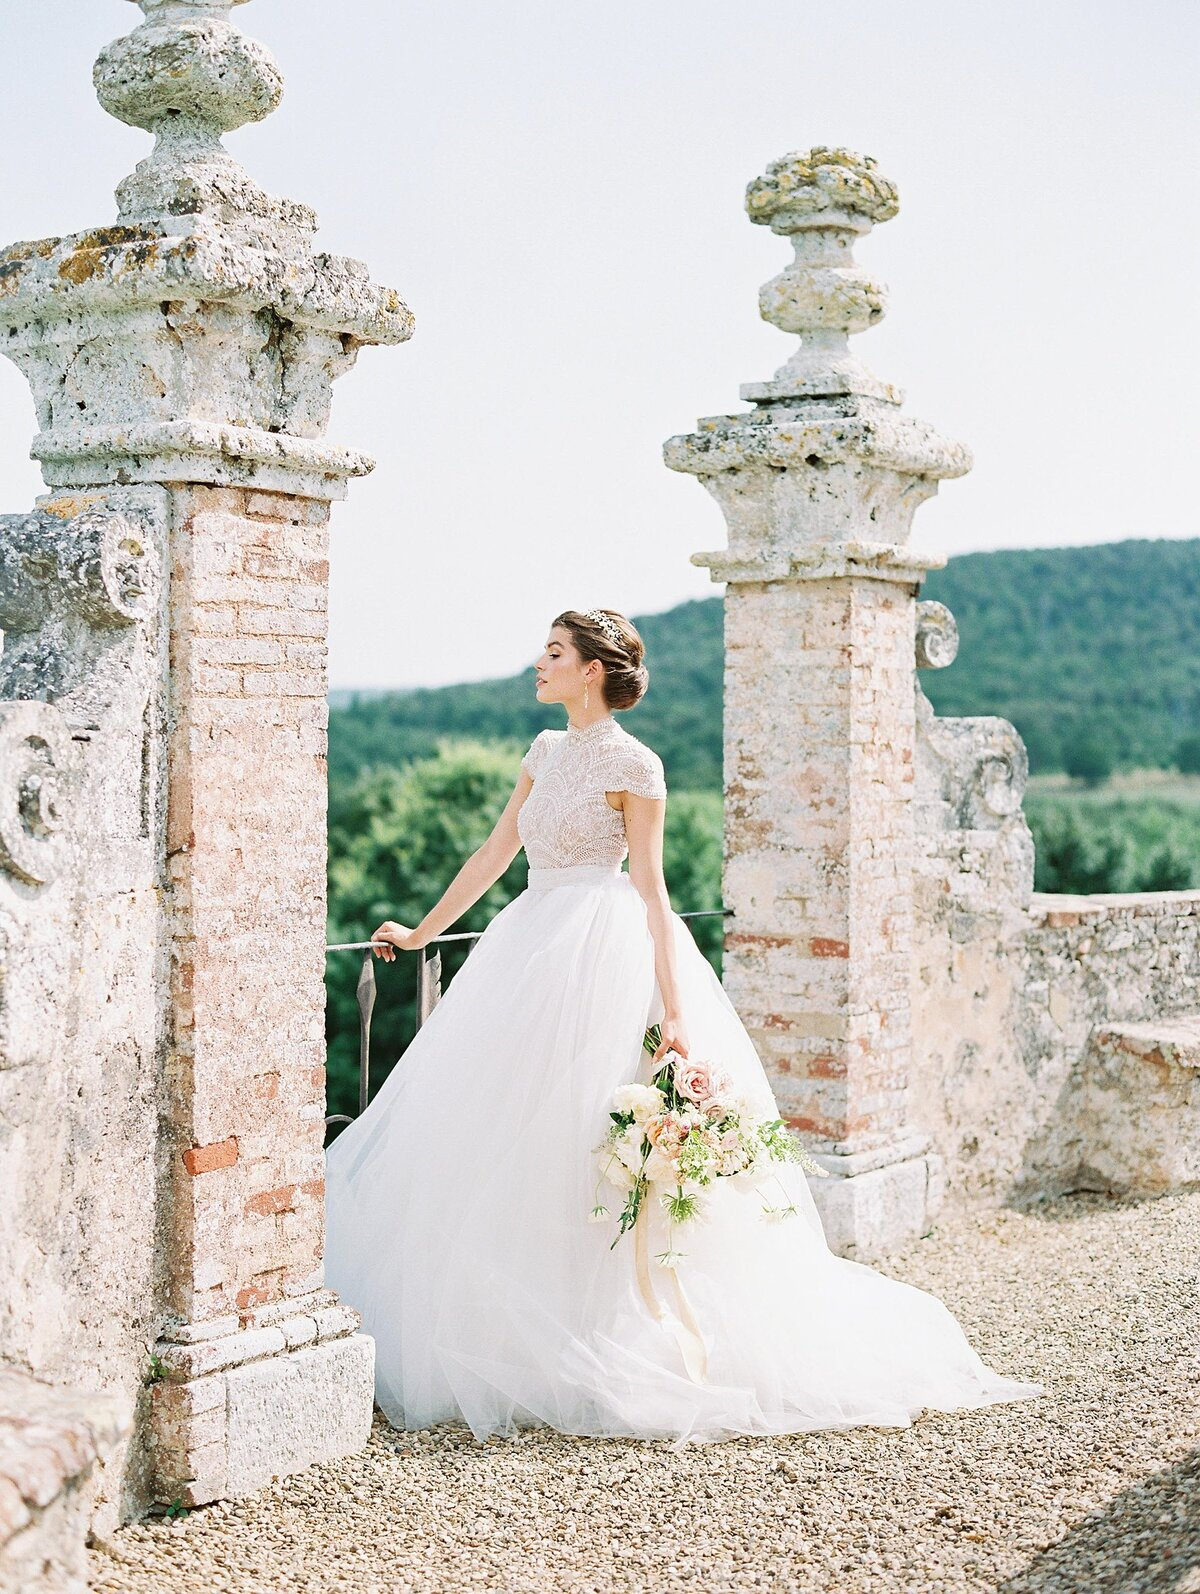 NKT-Events_Wedding-Inspiration-Editorial_Castello-di-Celsa_0346